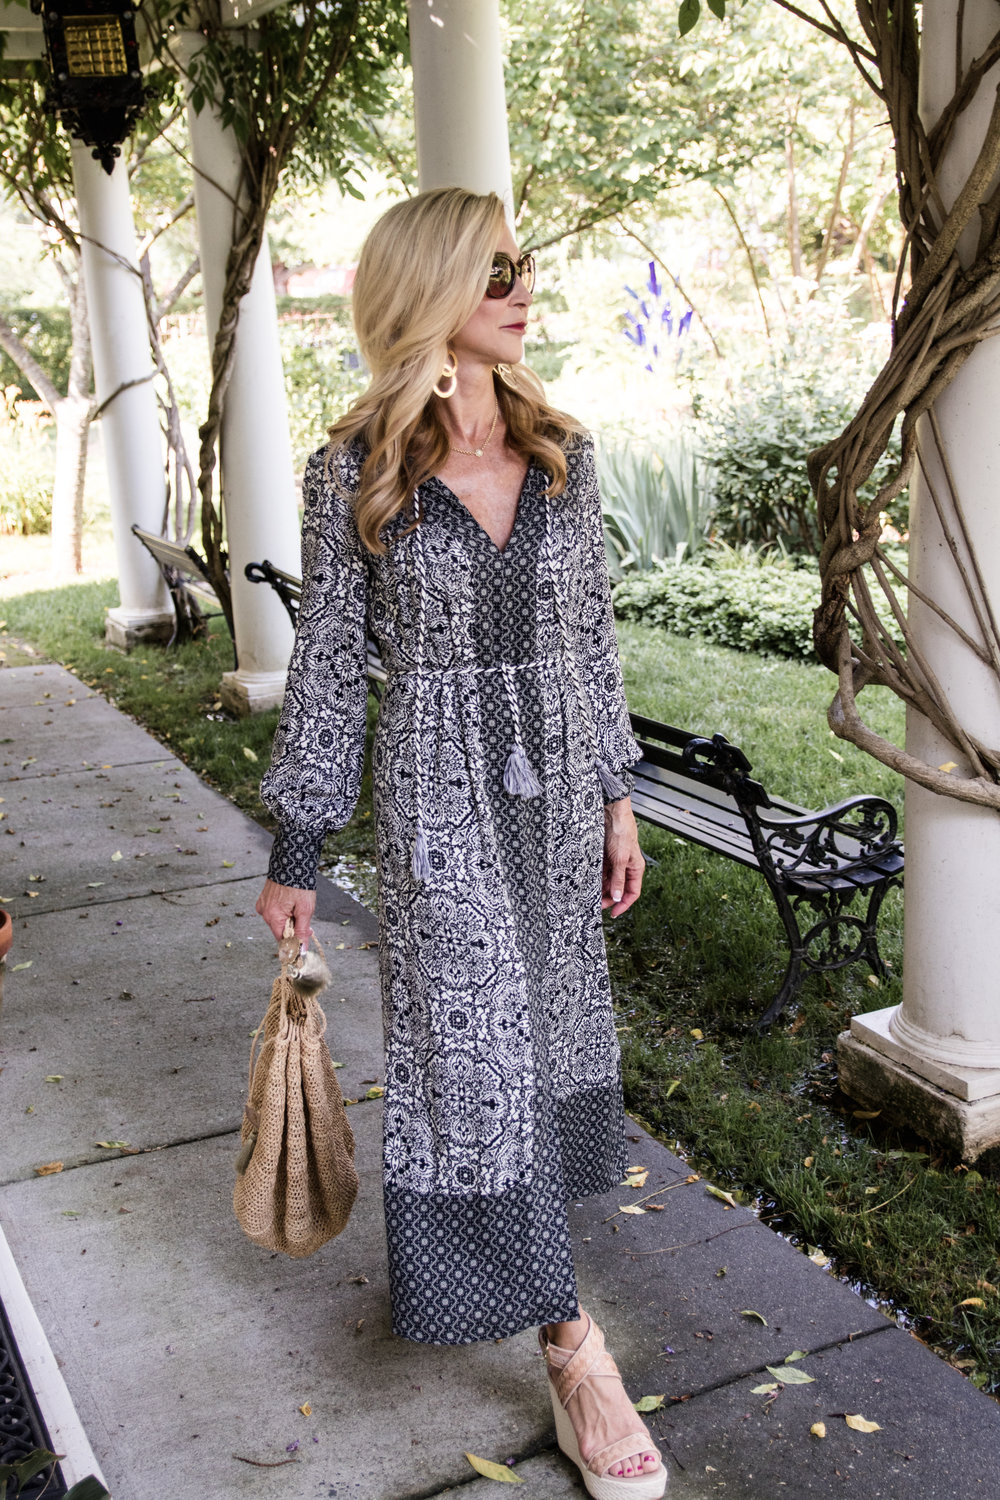 Summer dressing at it's best!